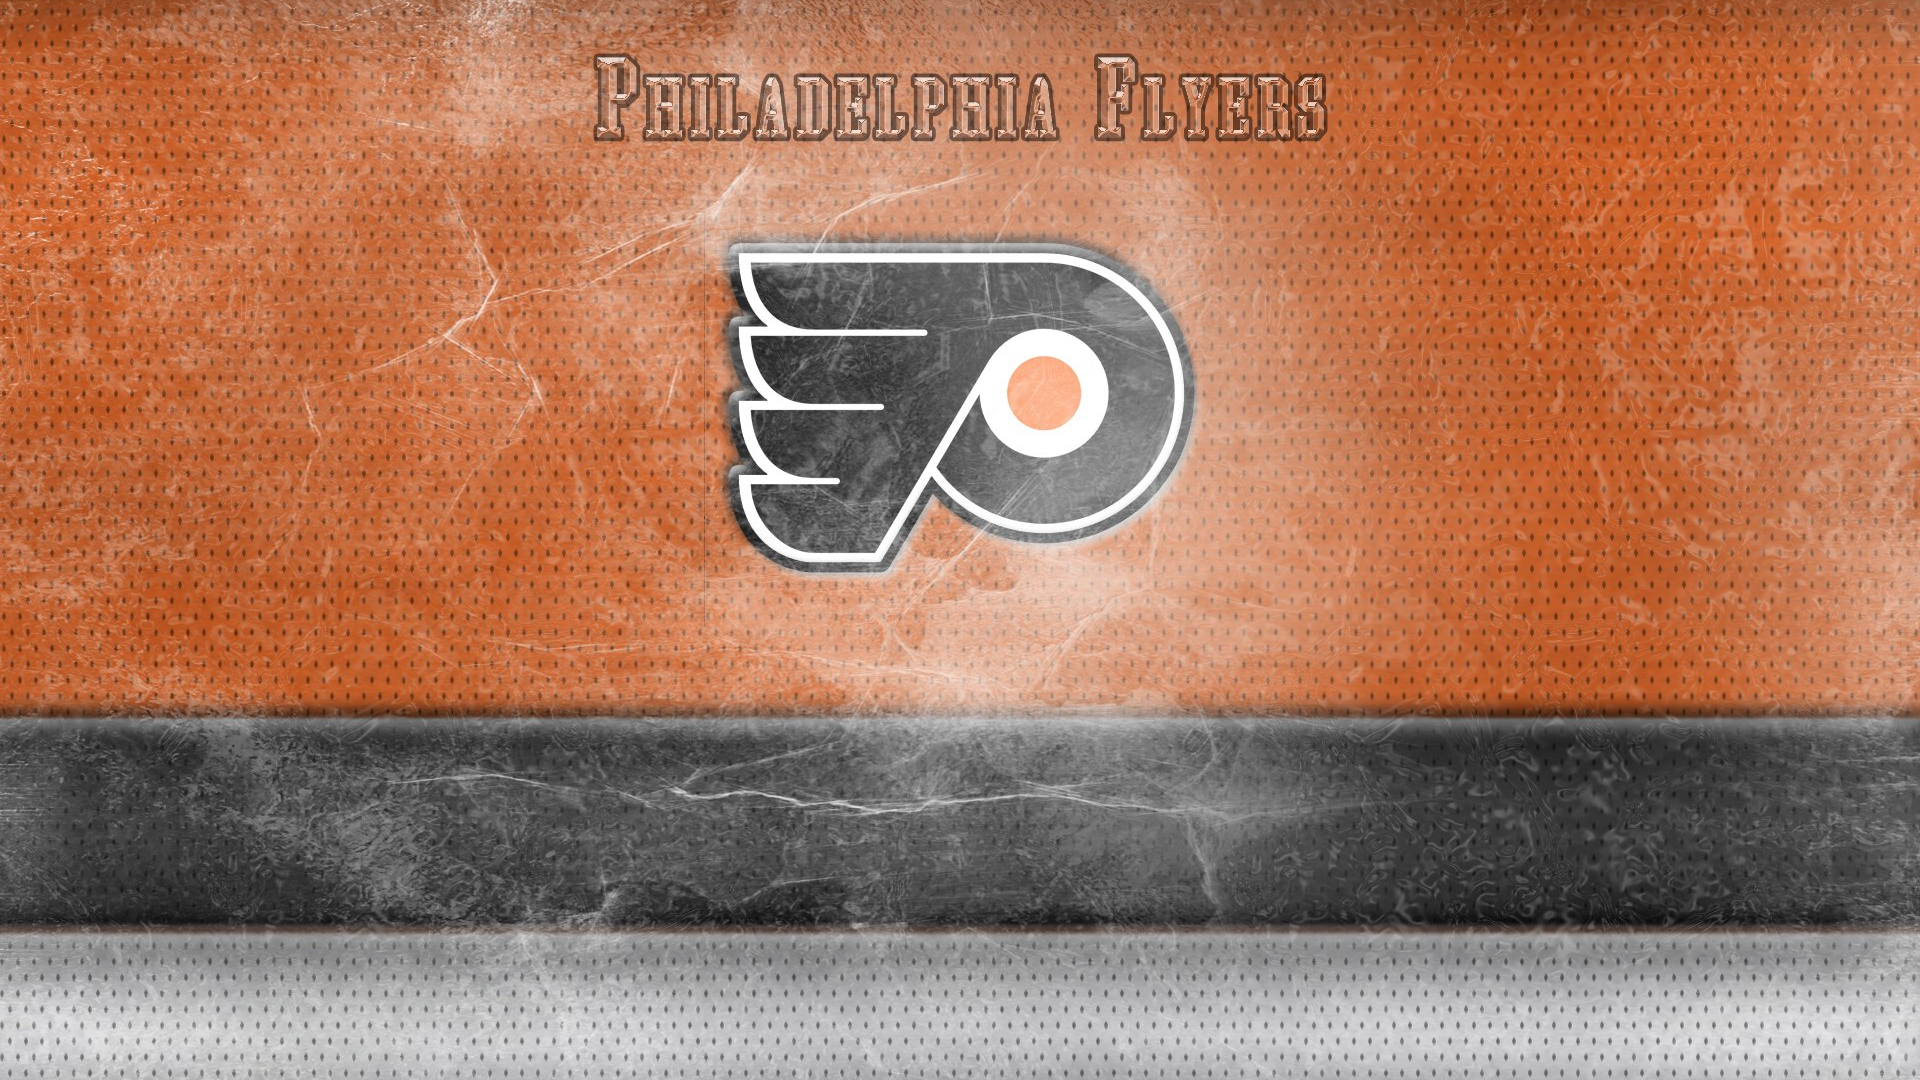 PHILADELPHIA FLYERS Nhl Hockey 16 Wallpaper 1920x1200 Download Resolutions Desktop 1920x1080